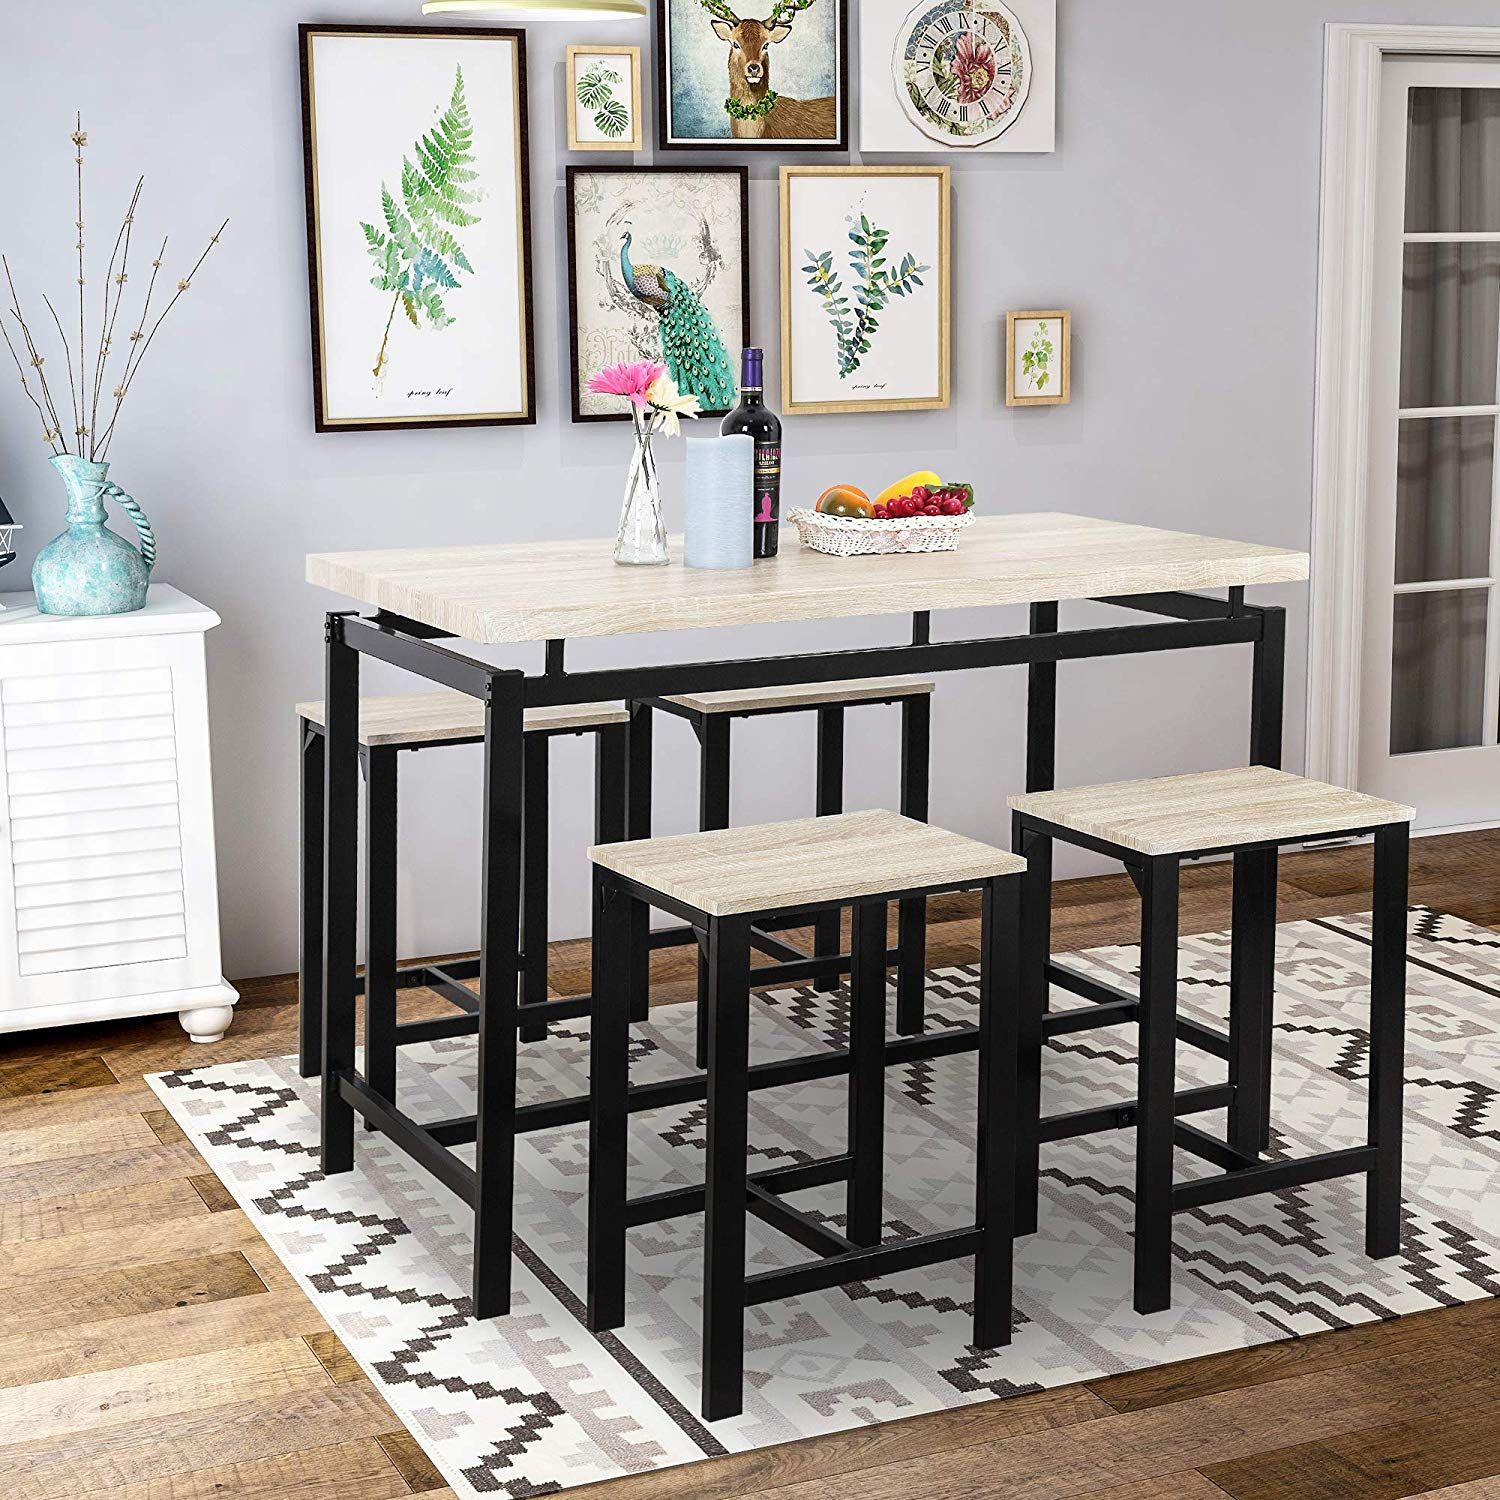 5-Piece Counter Height Dining Set, Heavy-Duty Kitchen Table and 4 Chairs  Set, Wooden & Steel Structure Pub Table Set, Rectangular Breakfast Bar  Table ...